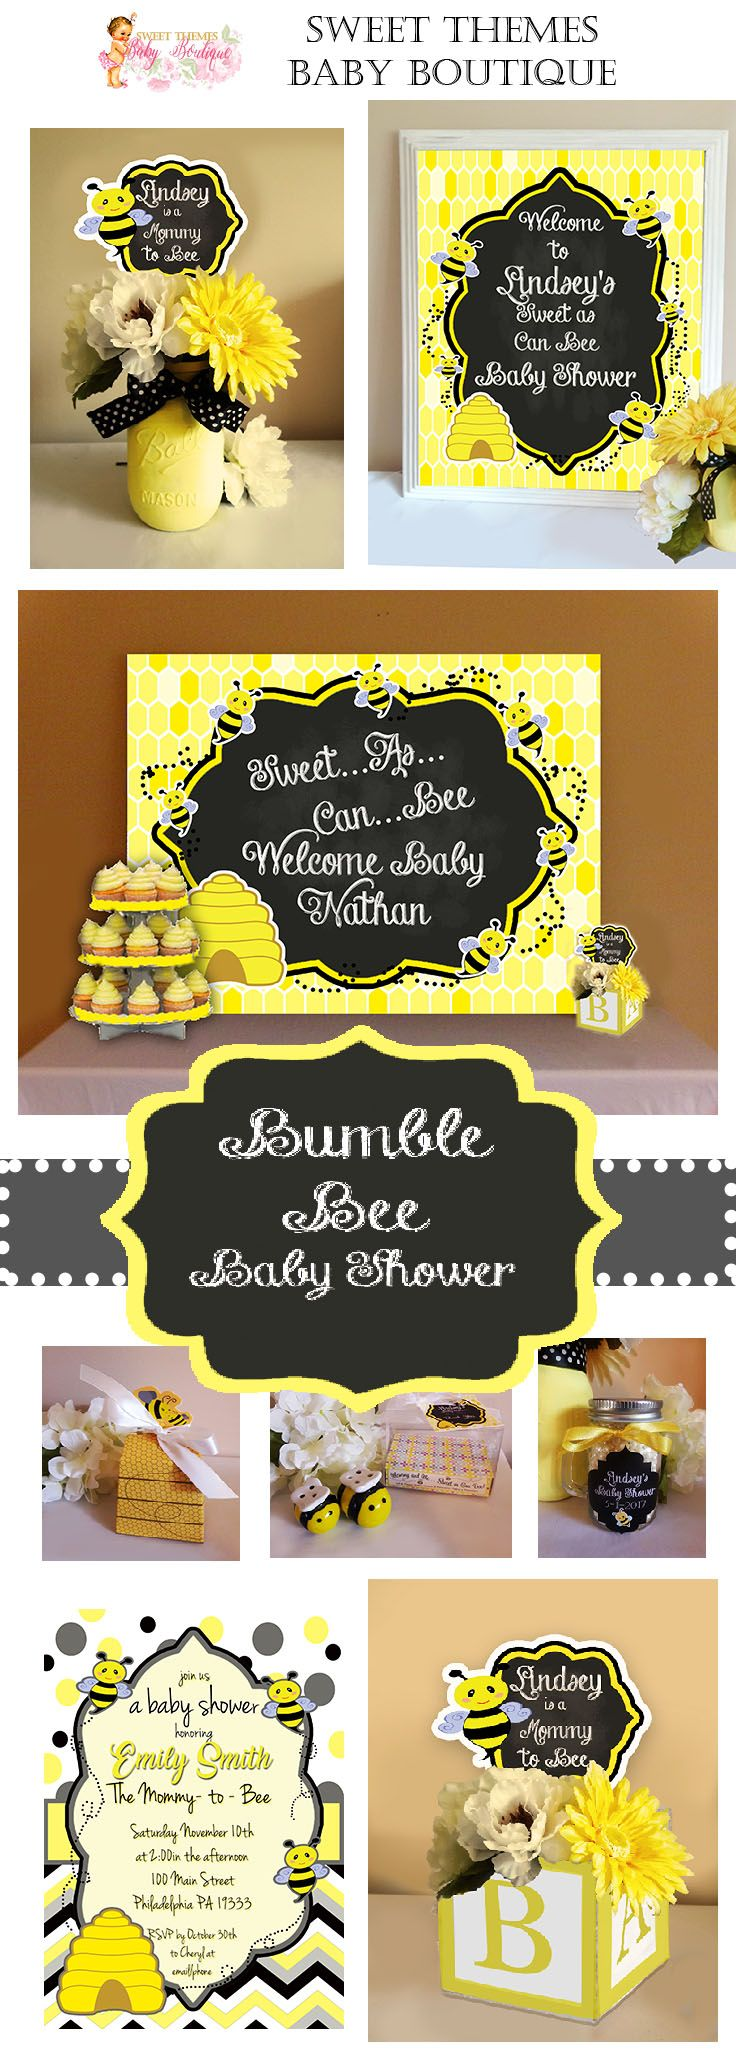 Bumble Bee Themed Baby Shower Invitations Paperinvite Best 25 Showers Ideas Theme